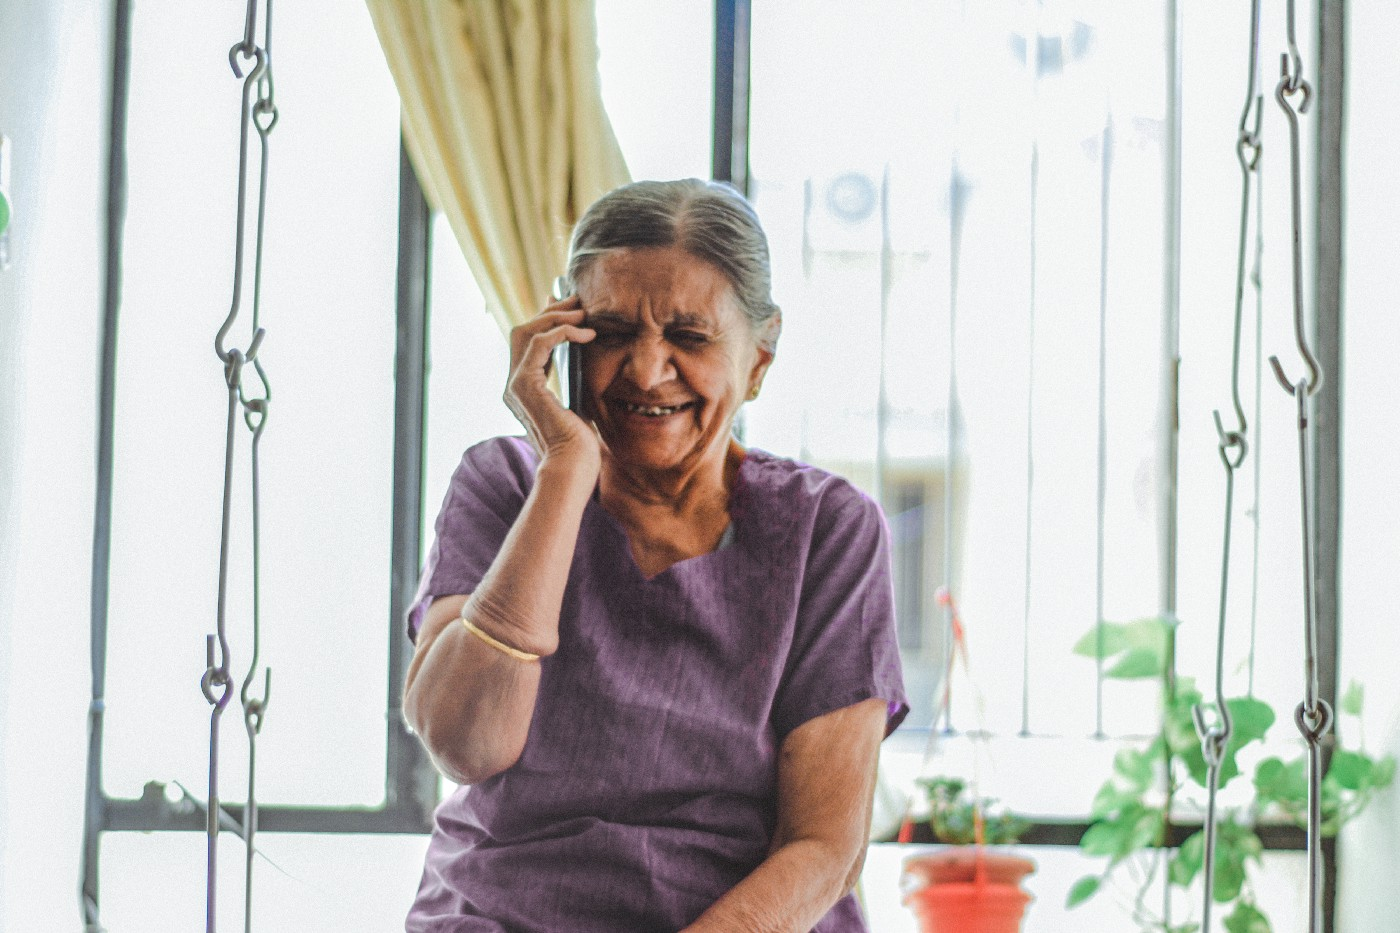 A grandmother smiles and laughs as she talks on the phone.